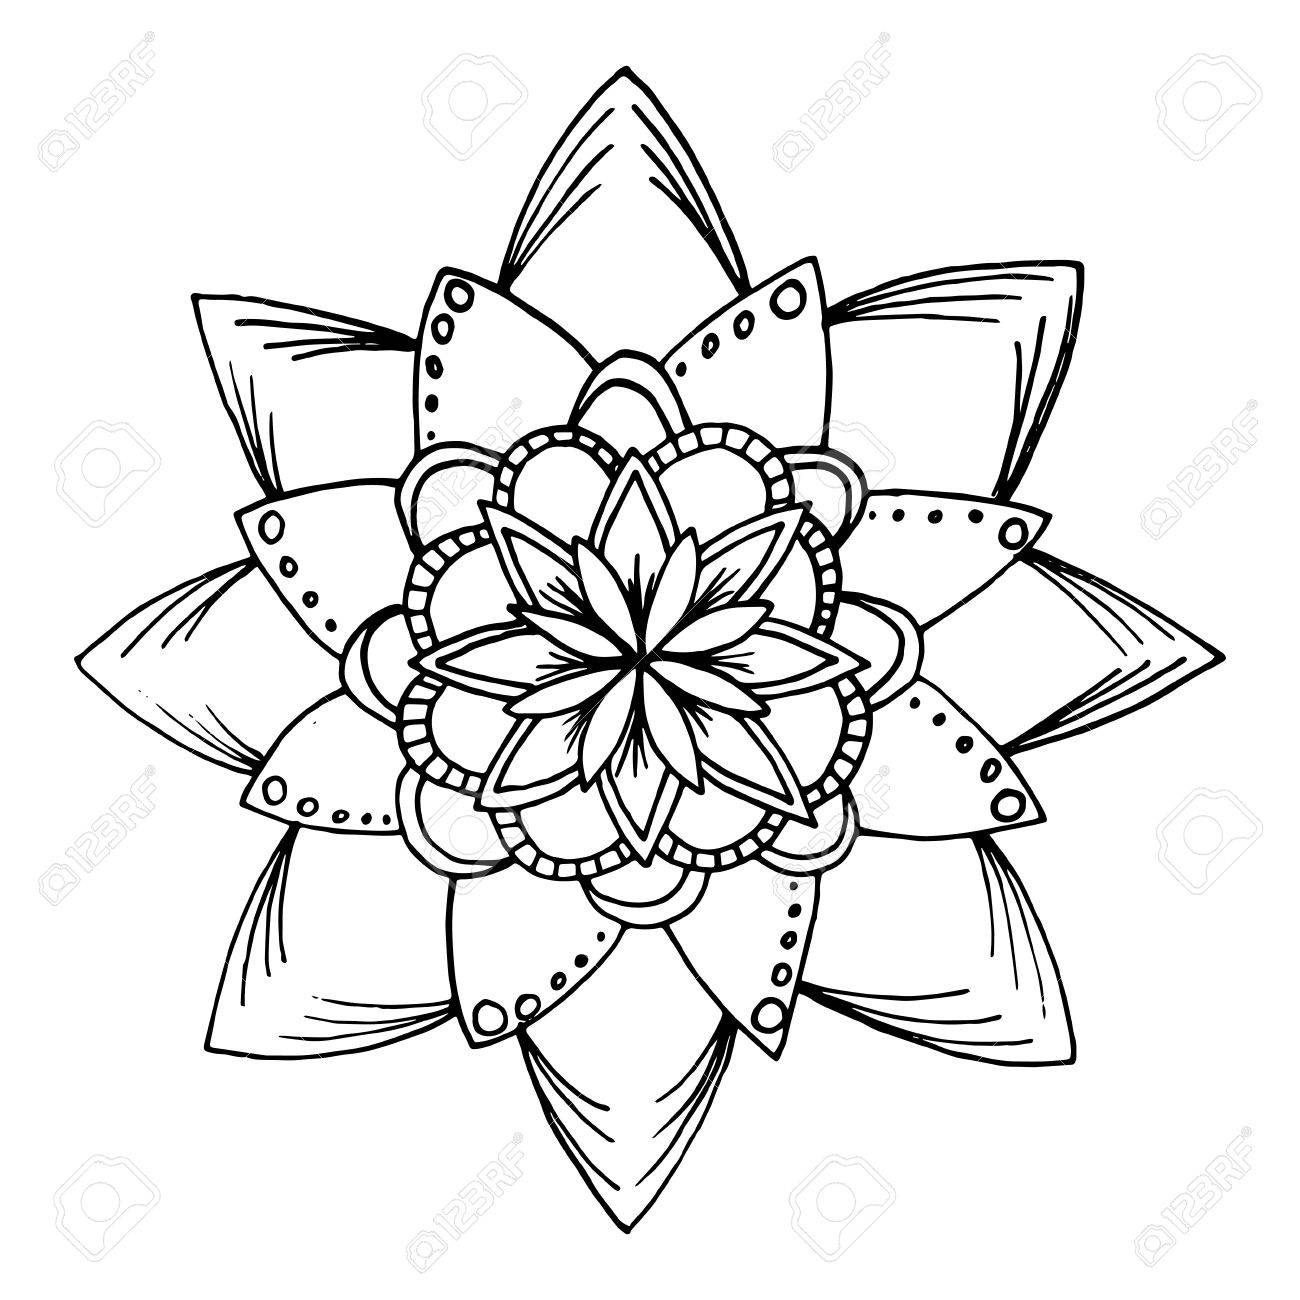 Hand Drawn Flower Mandala For Cards Invitations And Coloring Book Boho Style Stock Vector